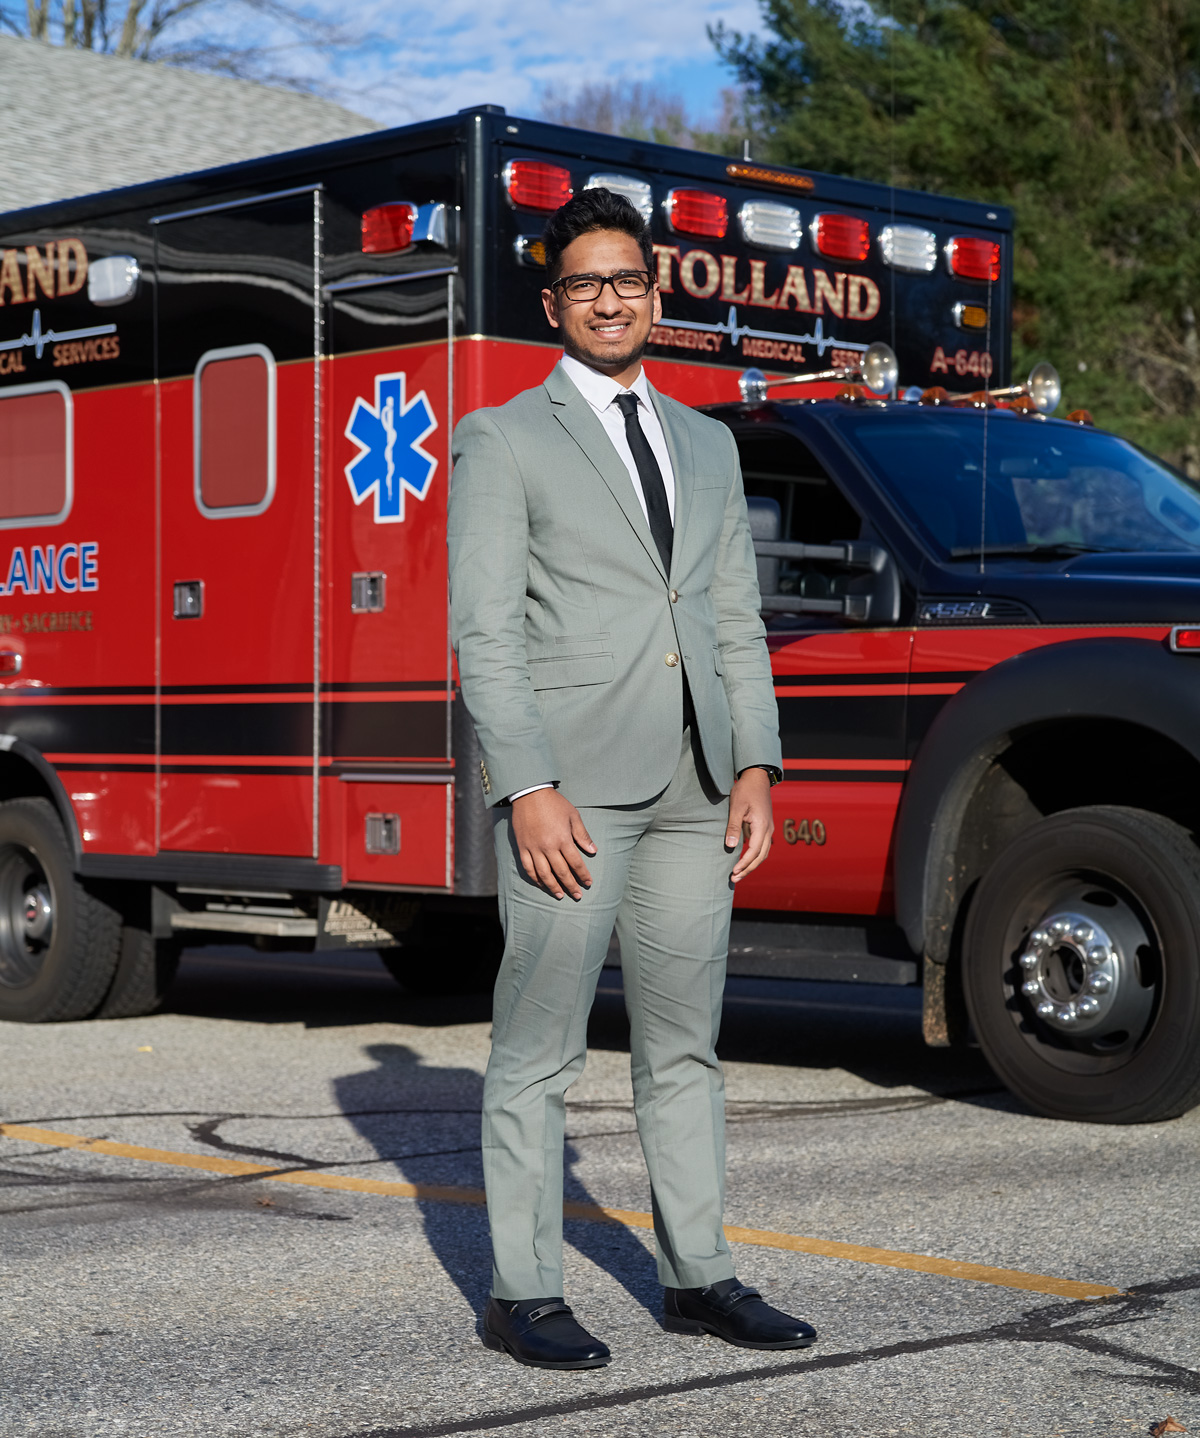 Patel in front of an ambulance